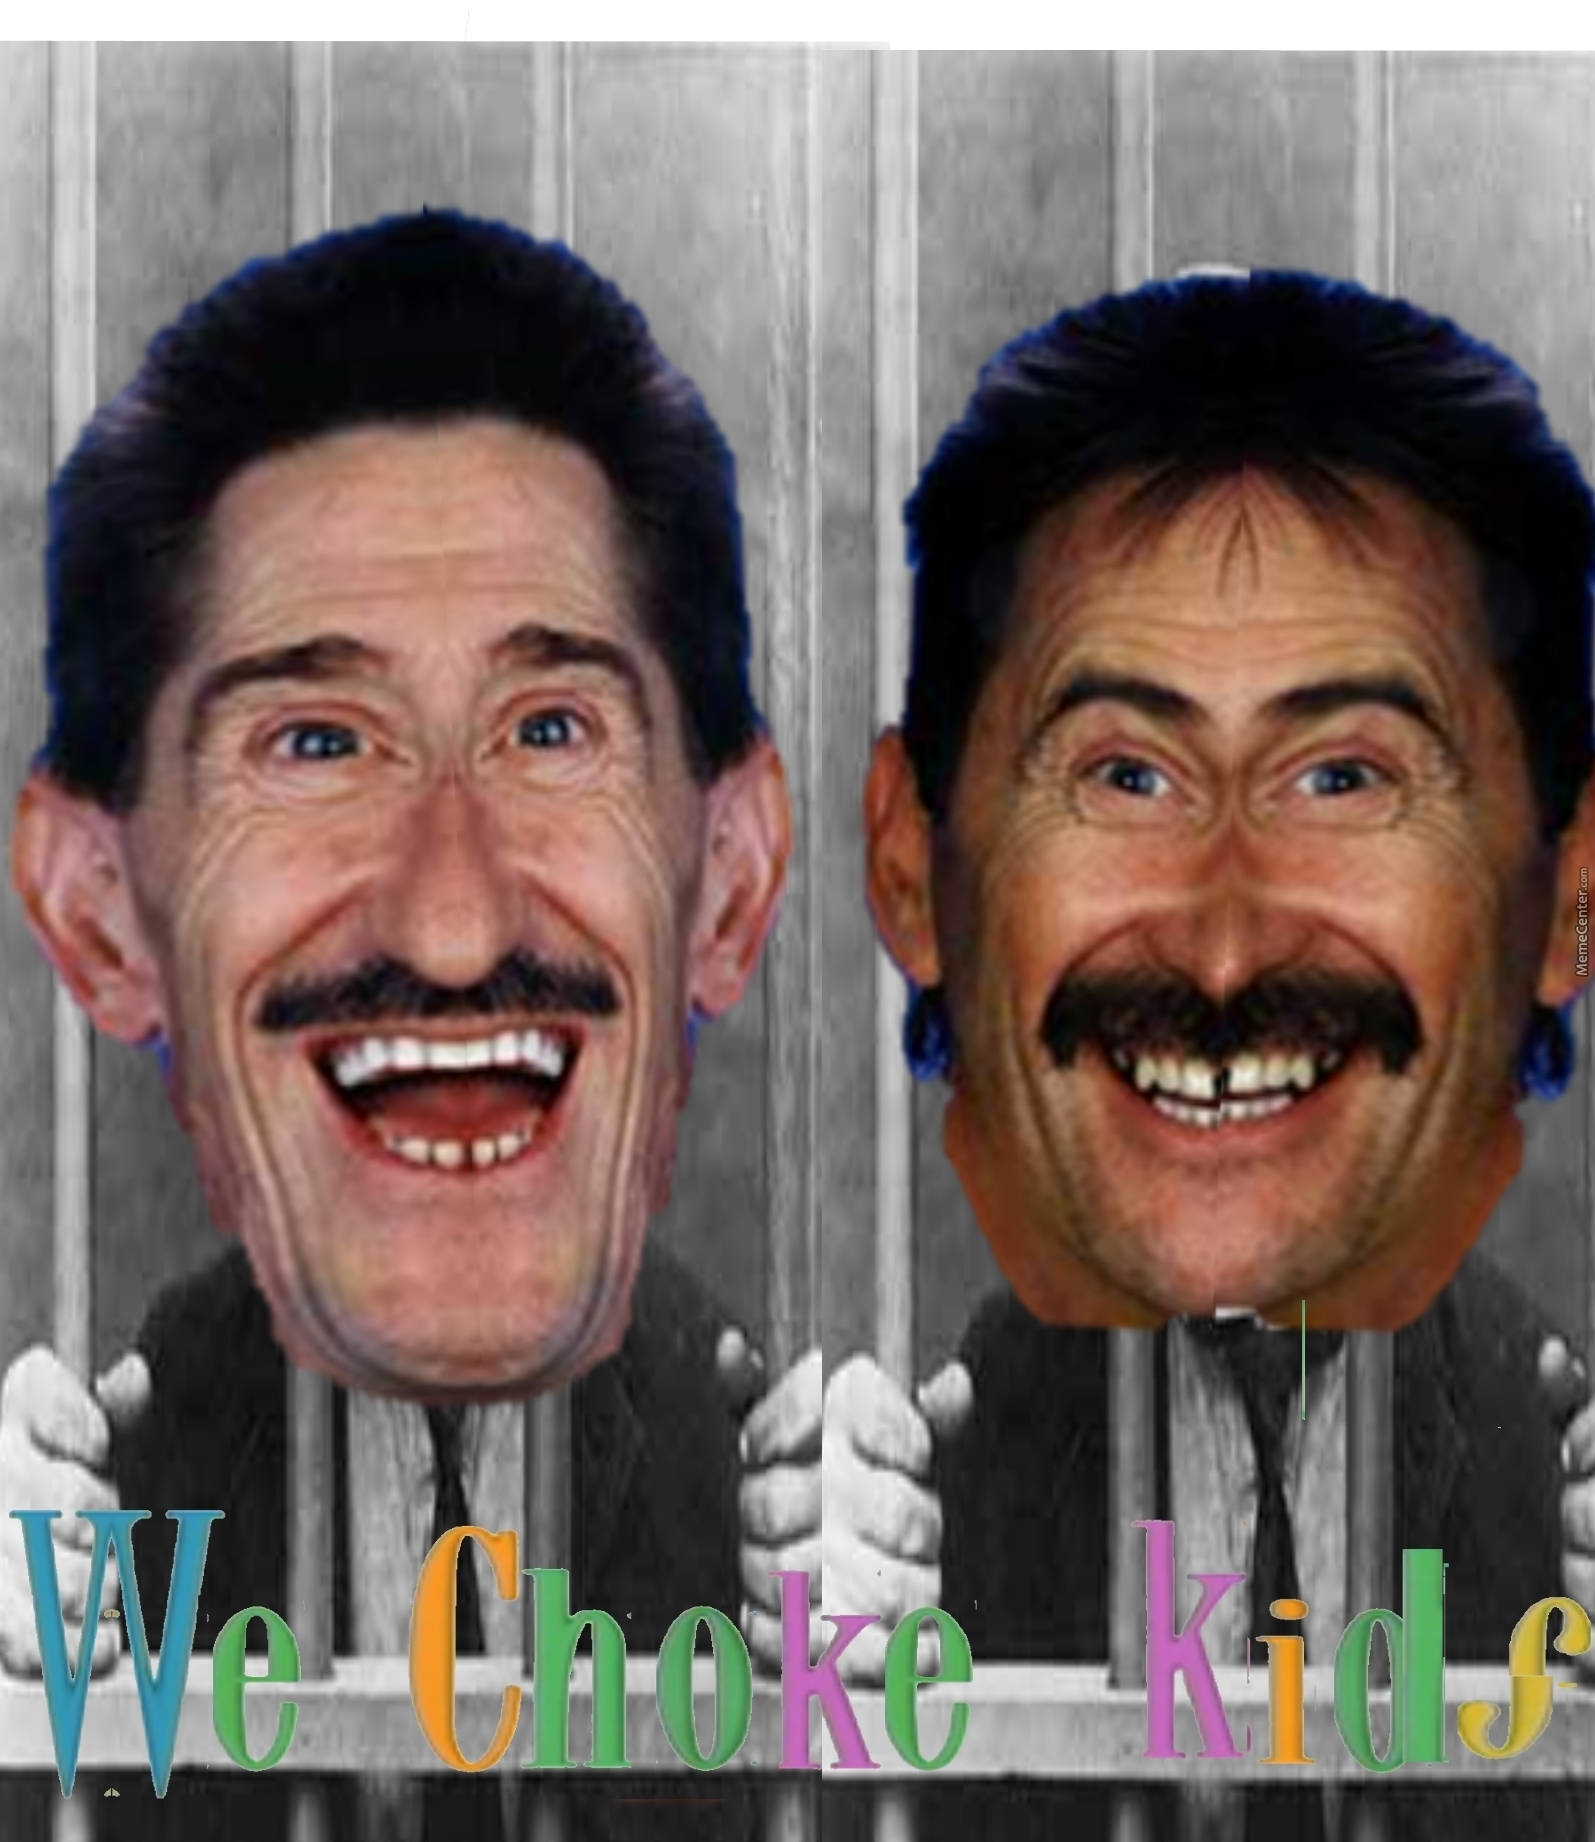 No Offence To The Chuckle Brothers, Just A Pretty Funny Edit.